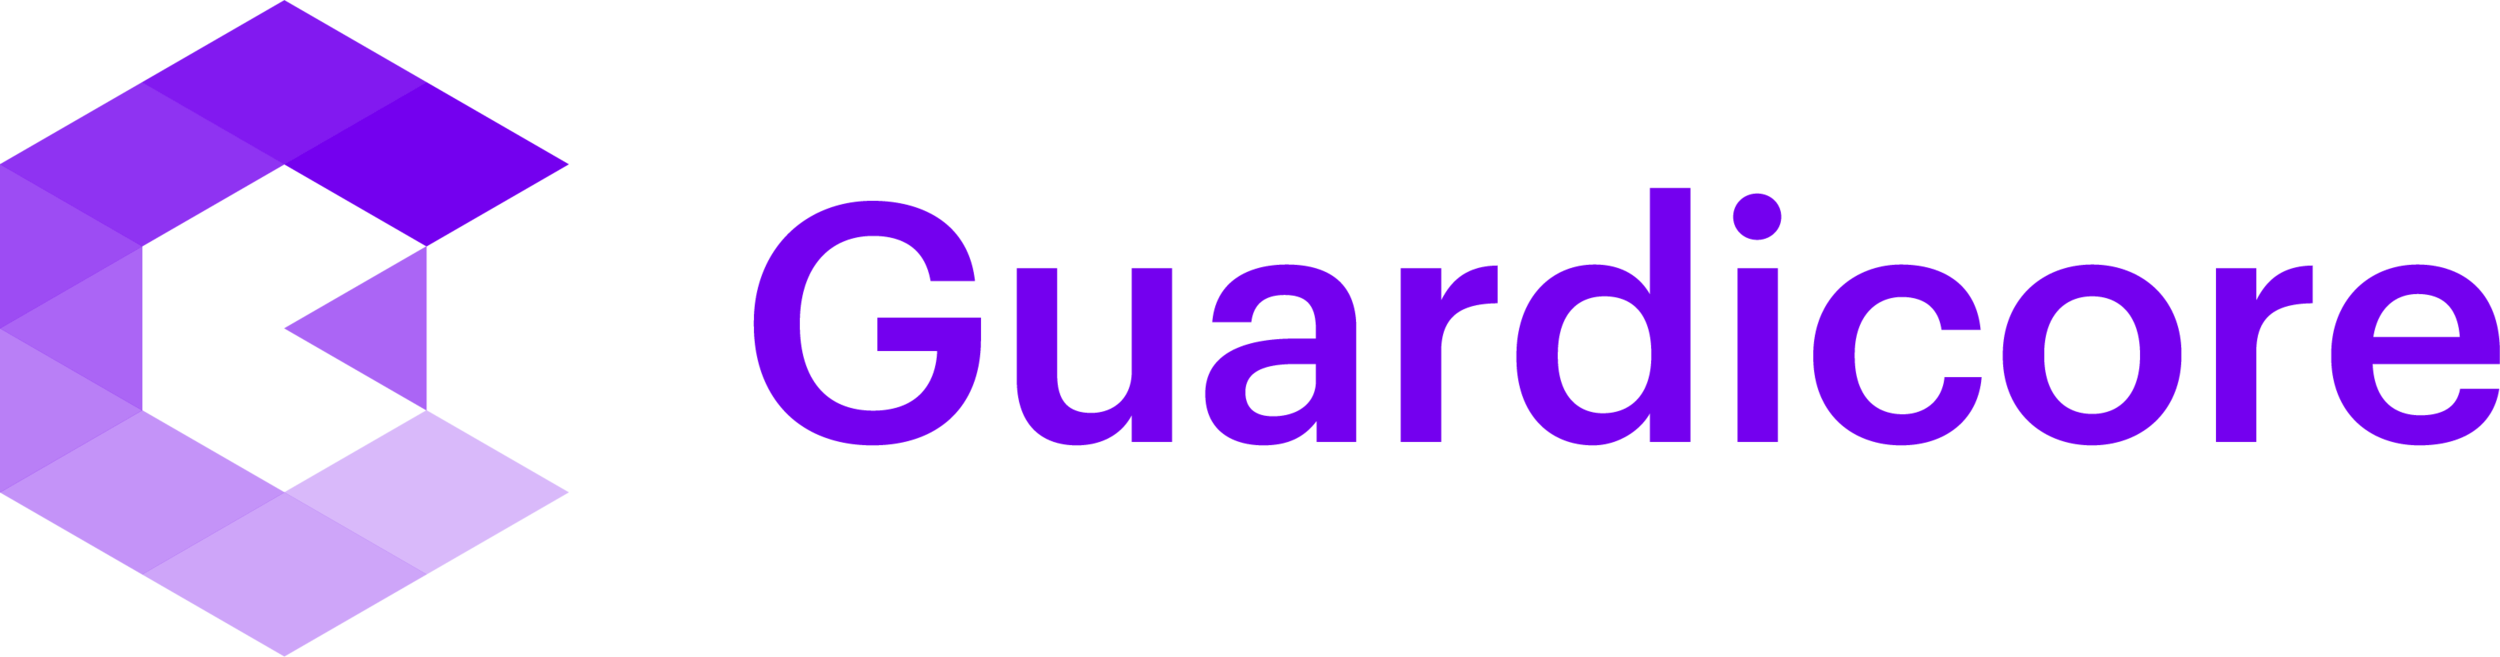 Guardicore Logo All Purple PNG FILE.png